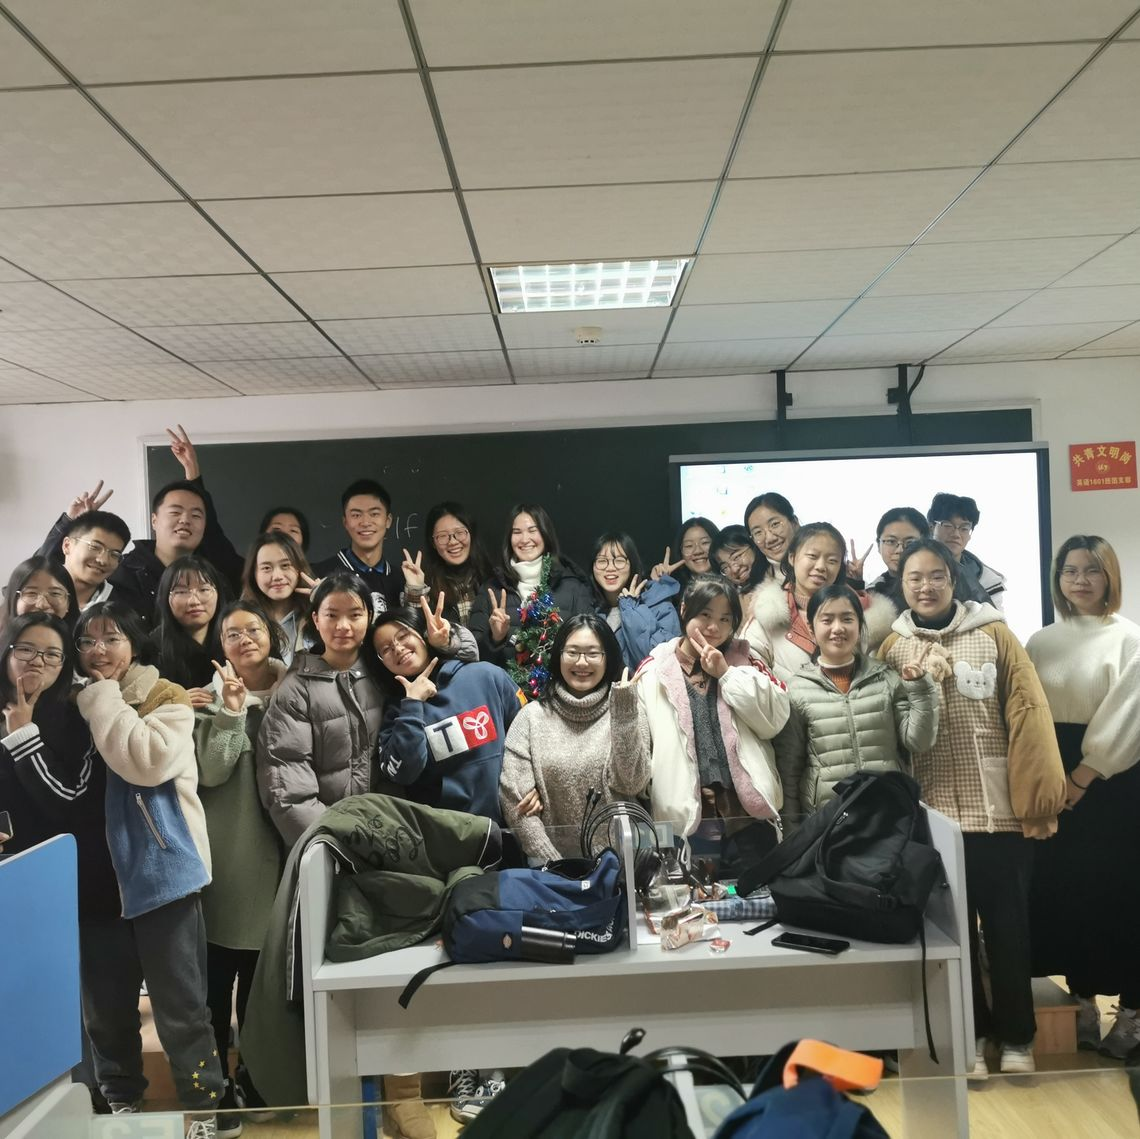 Chappell with Wuhan University of Technology students on their last day of fall class.